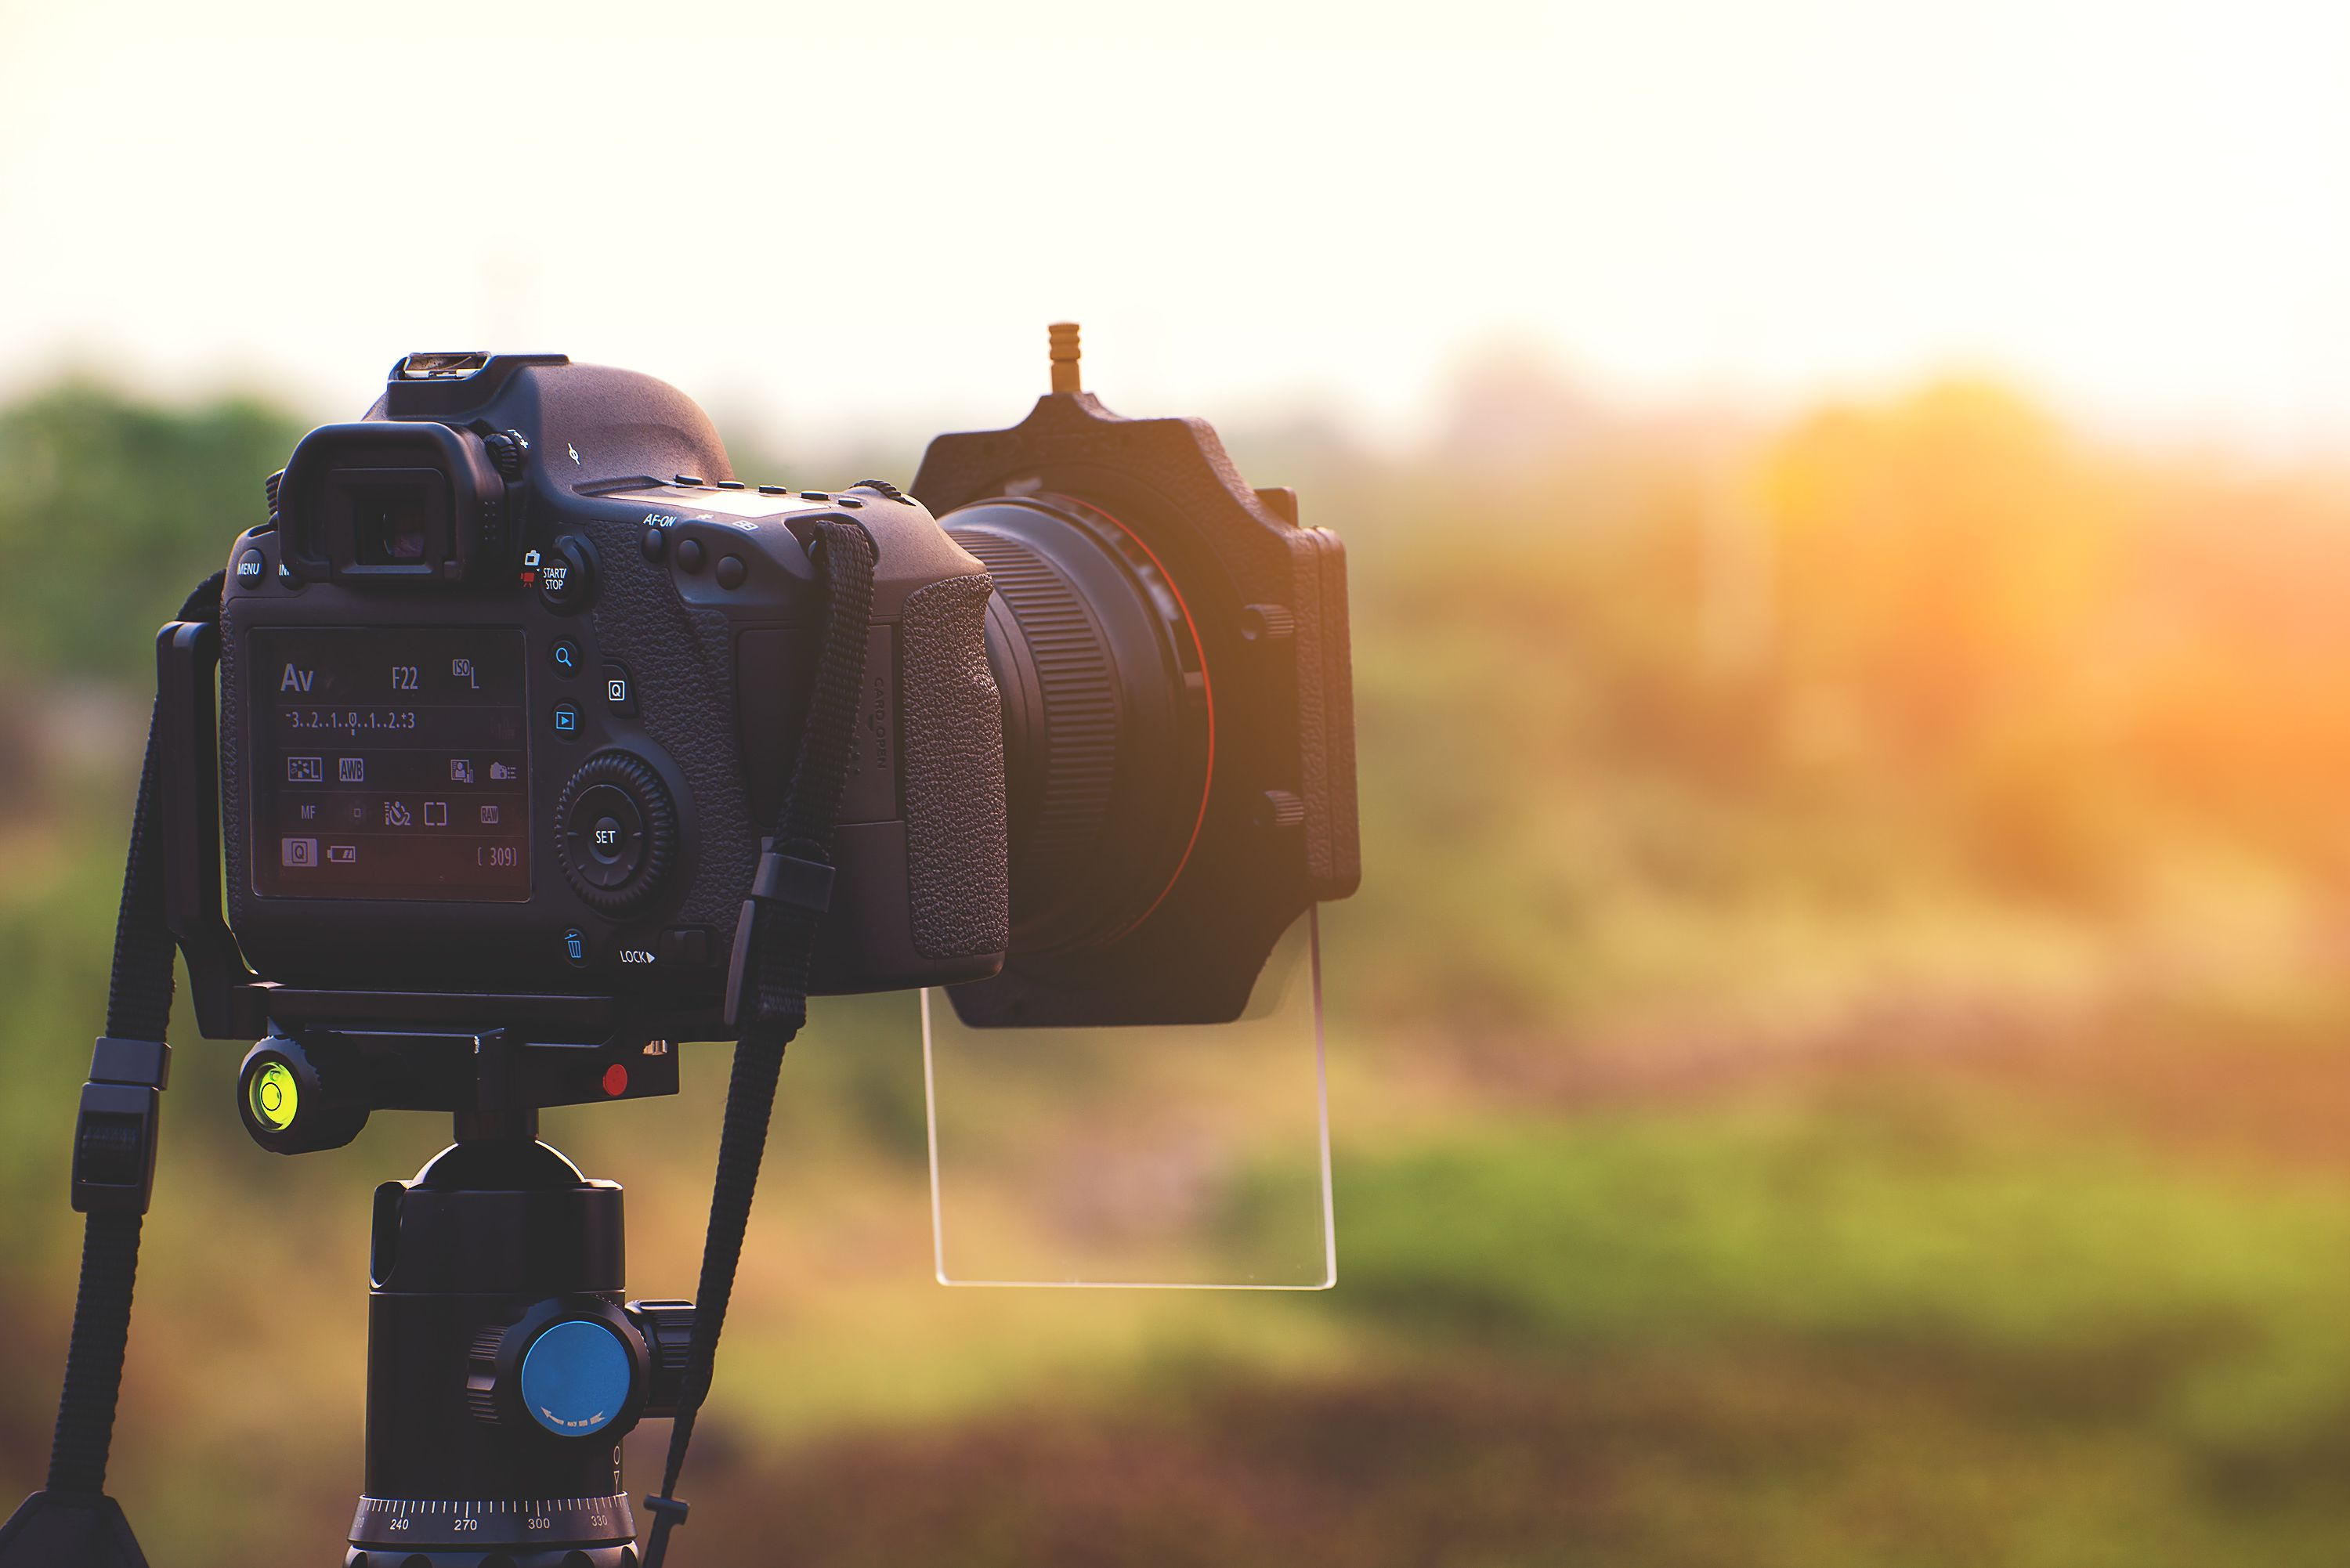 How to Master Aperture Priority Mode on Your DSLR